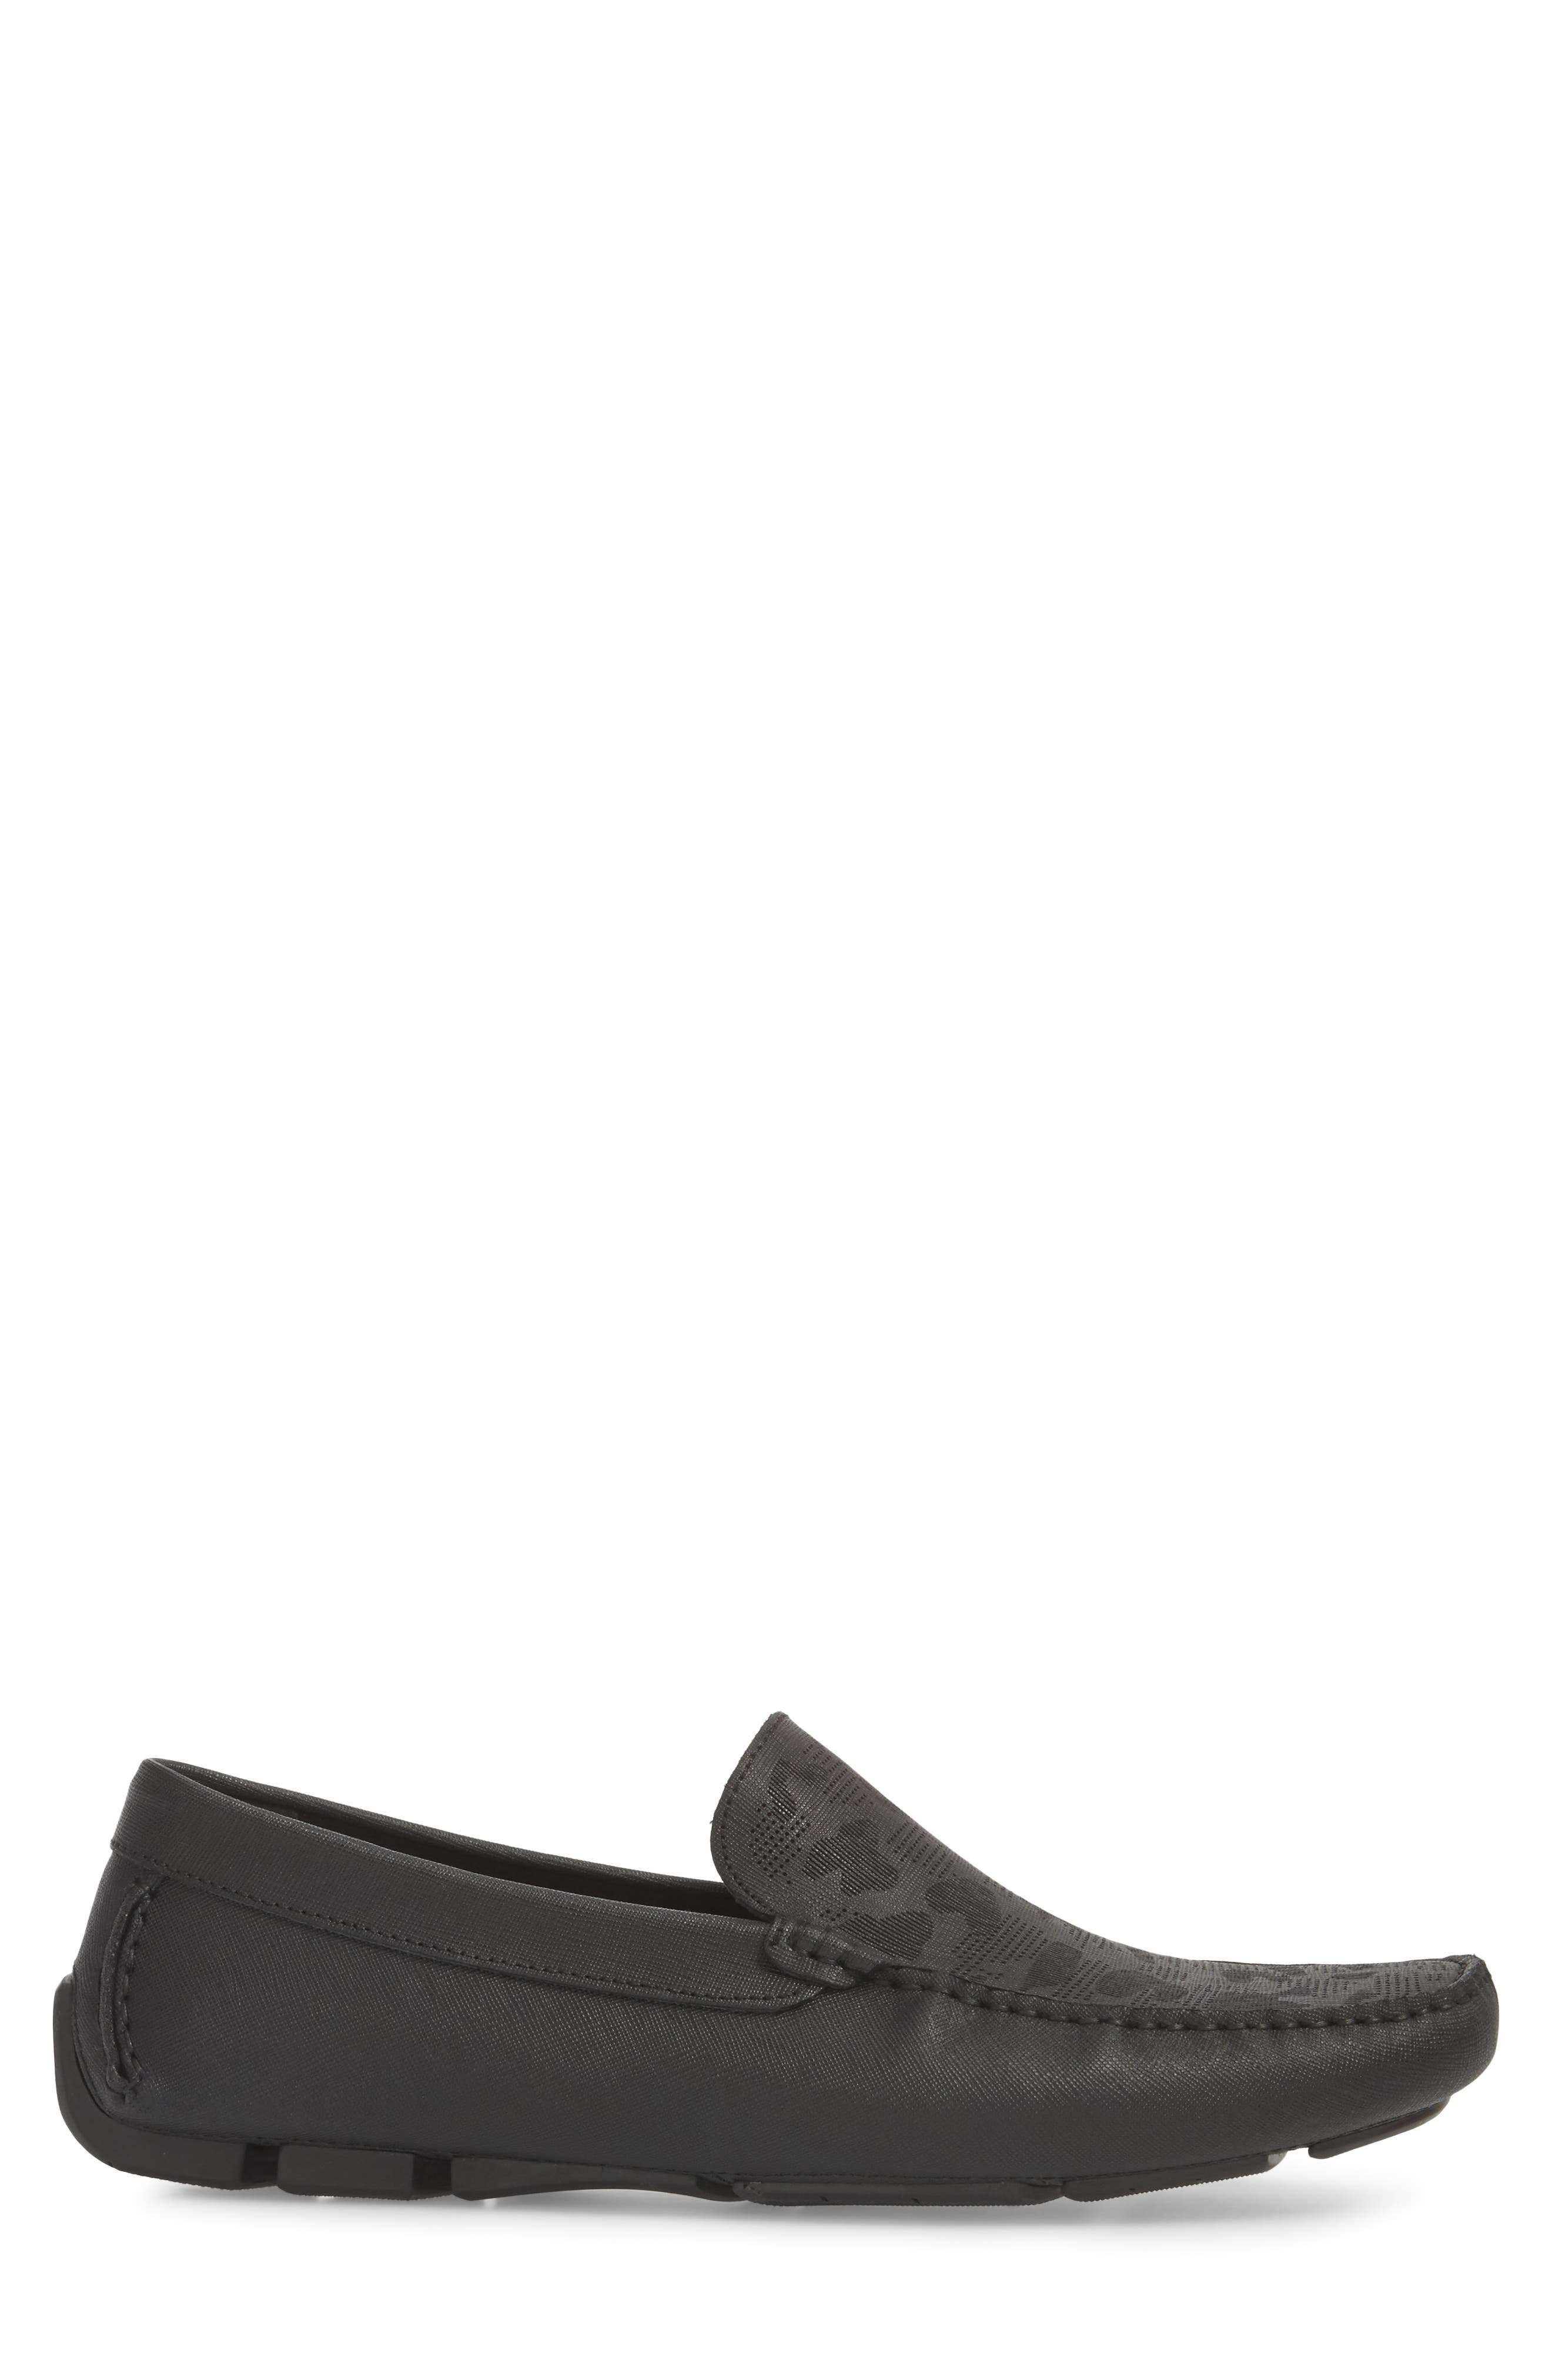 KENNETH COLE NEW YORK,                             Theme Song Driving Shoe,                             Alternate thumbnail 3, color,                             001